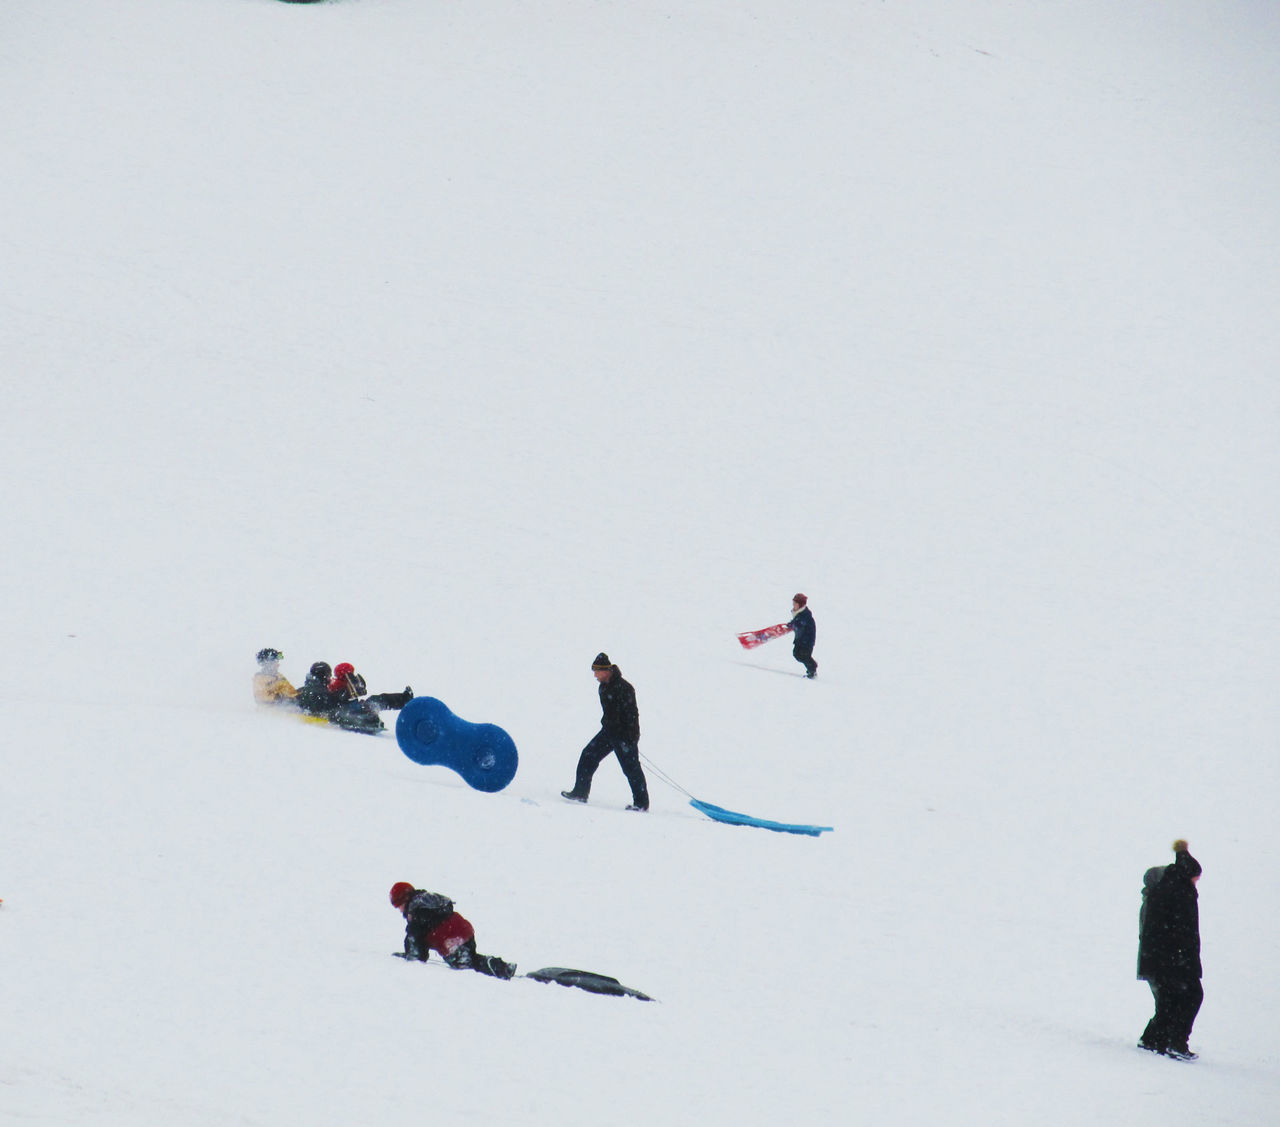 People Tobogganing On Snow Covered Field